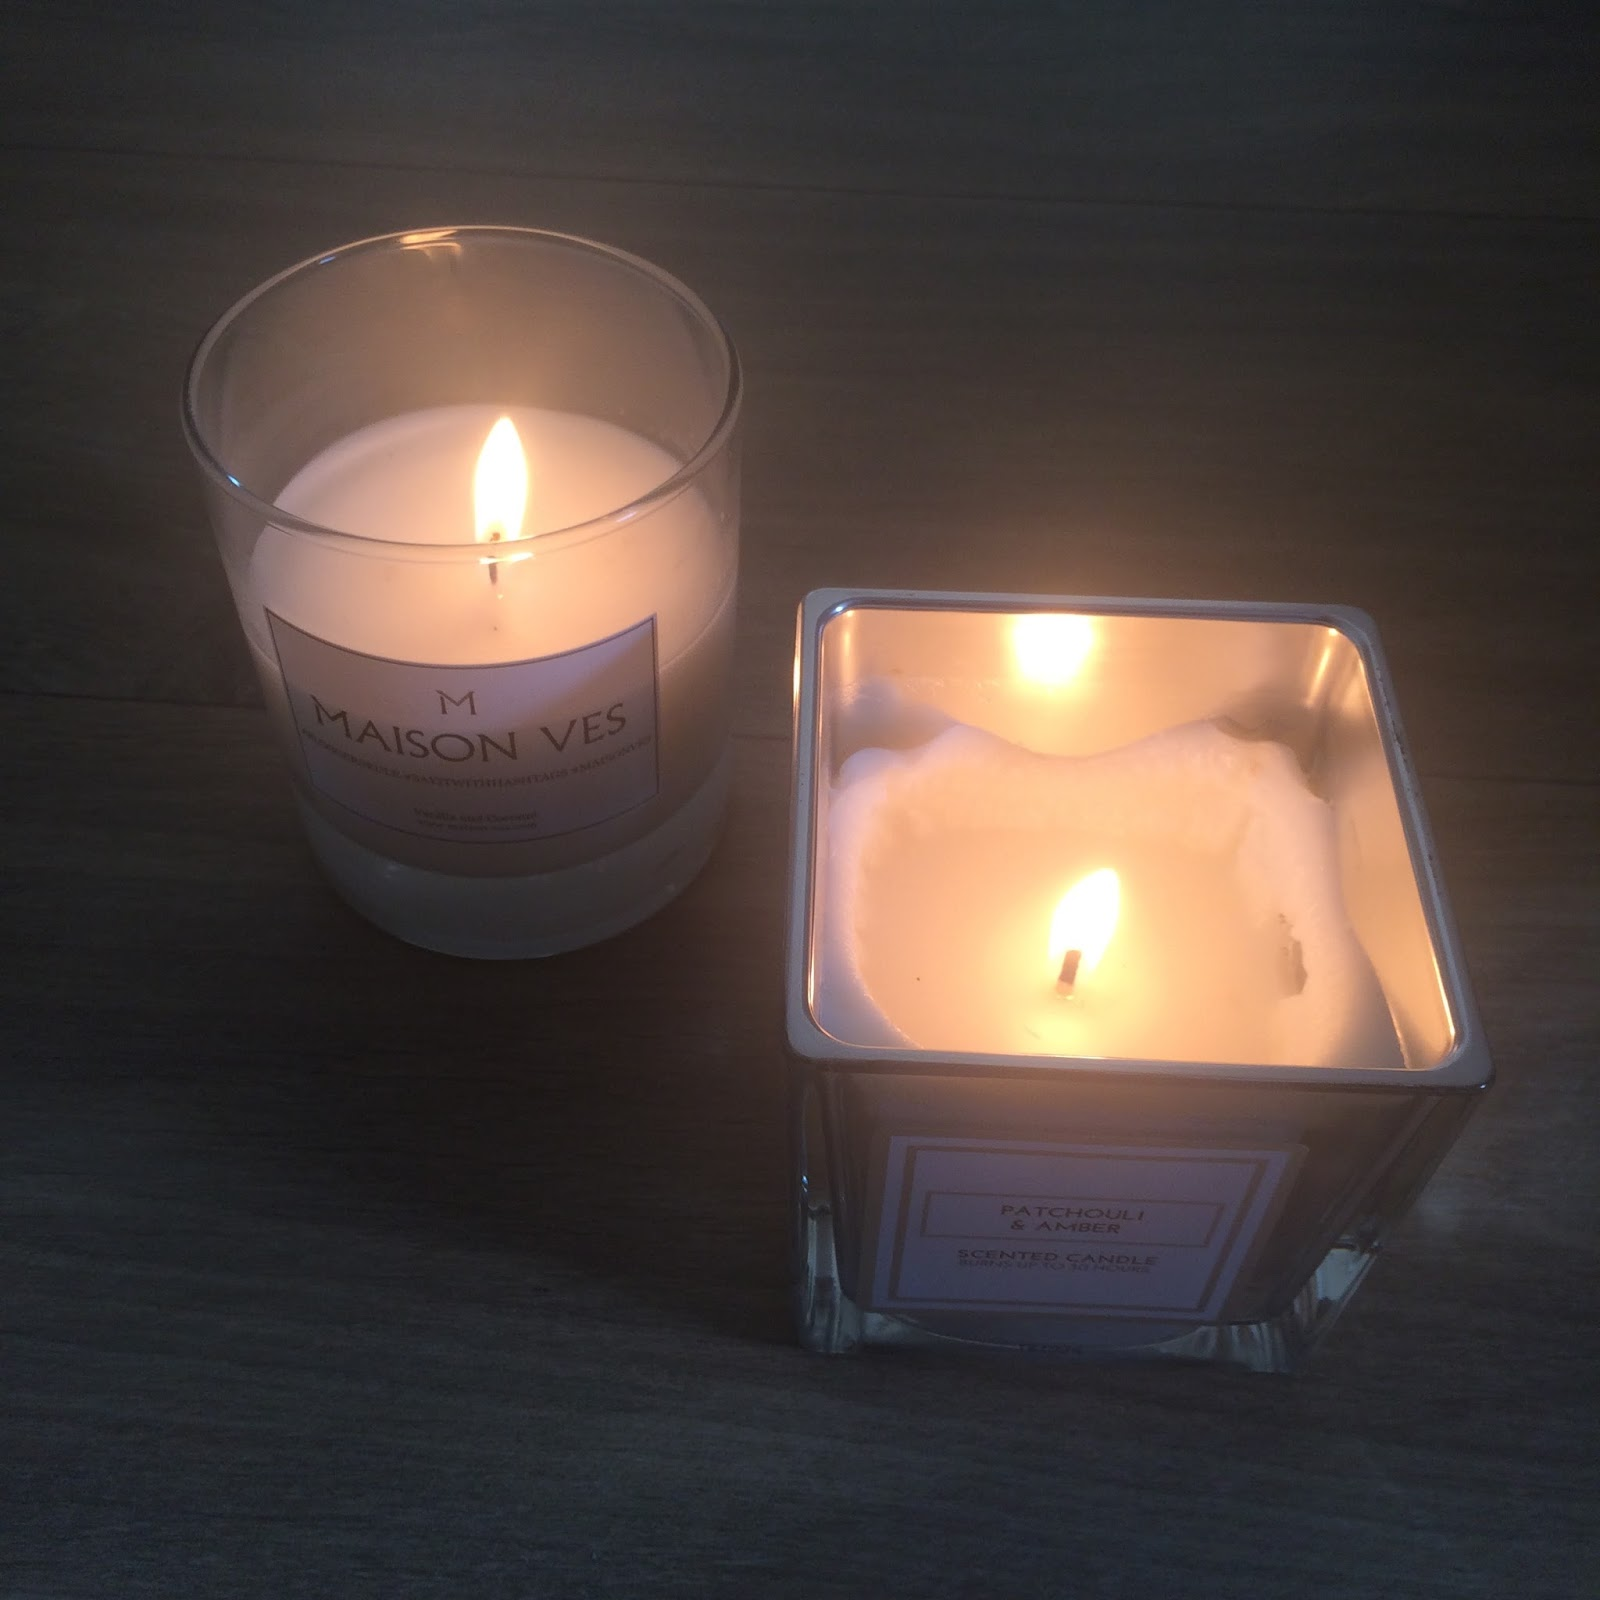 Maison ves primark candles scented coconut vanilla patchouli amber sexy man